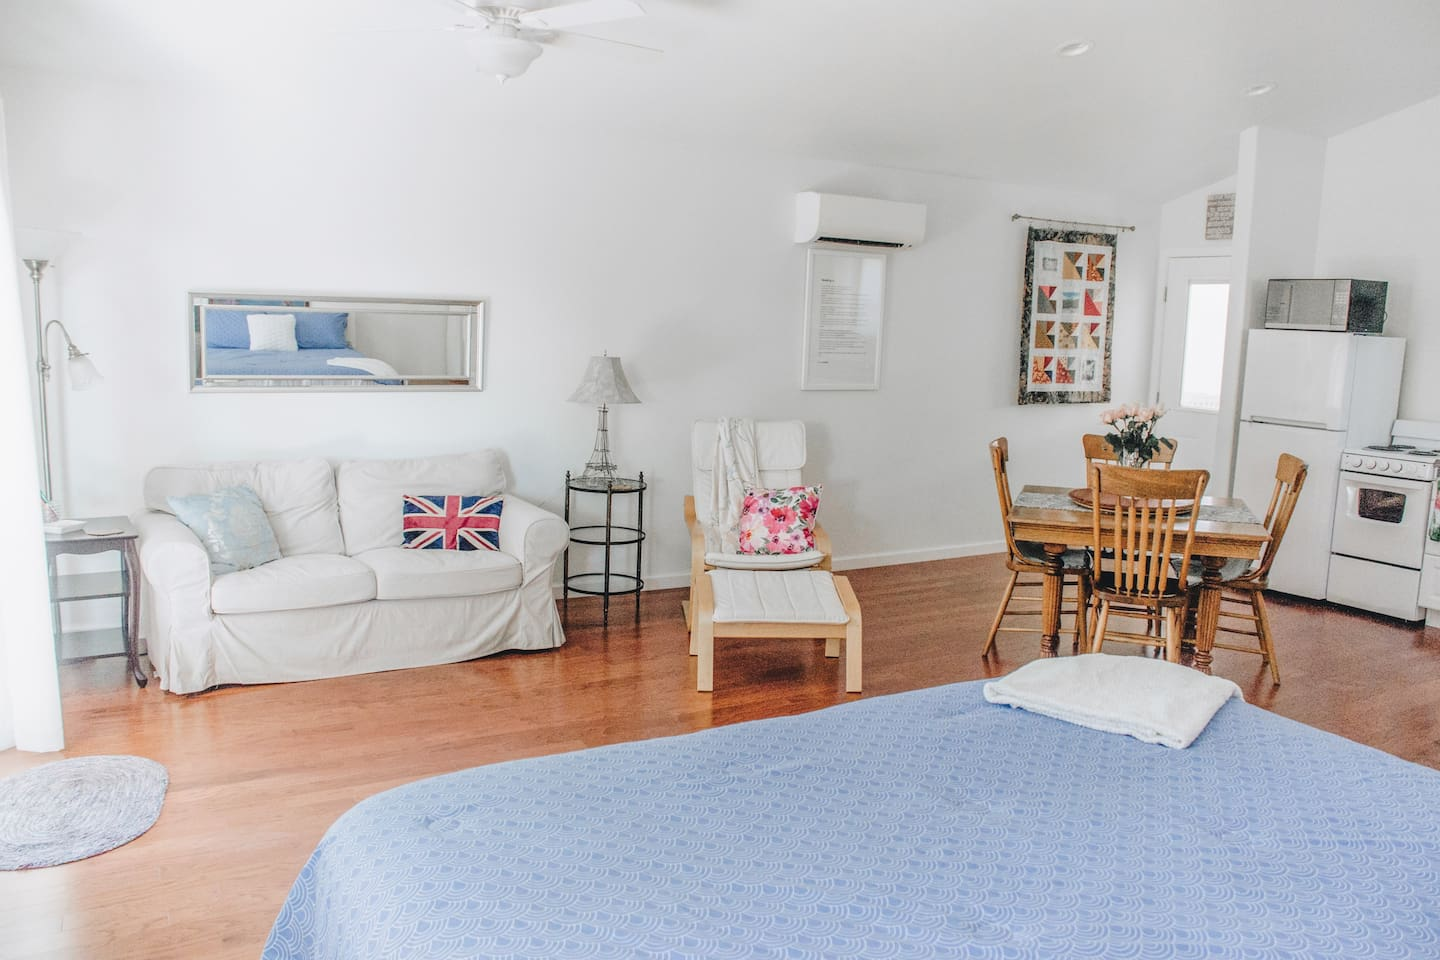 Charming, immaculate, spacious studio in private, park like setting